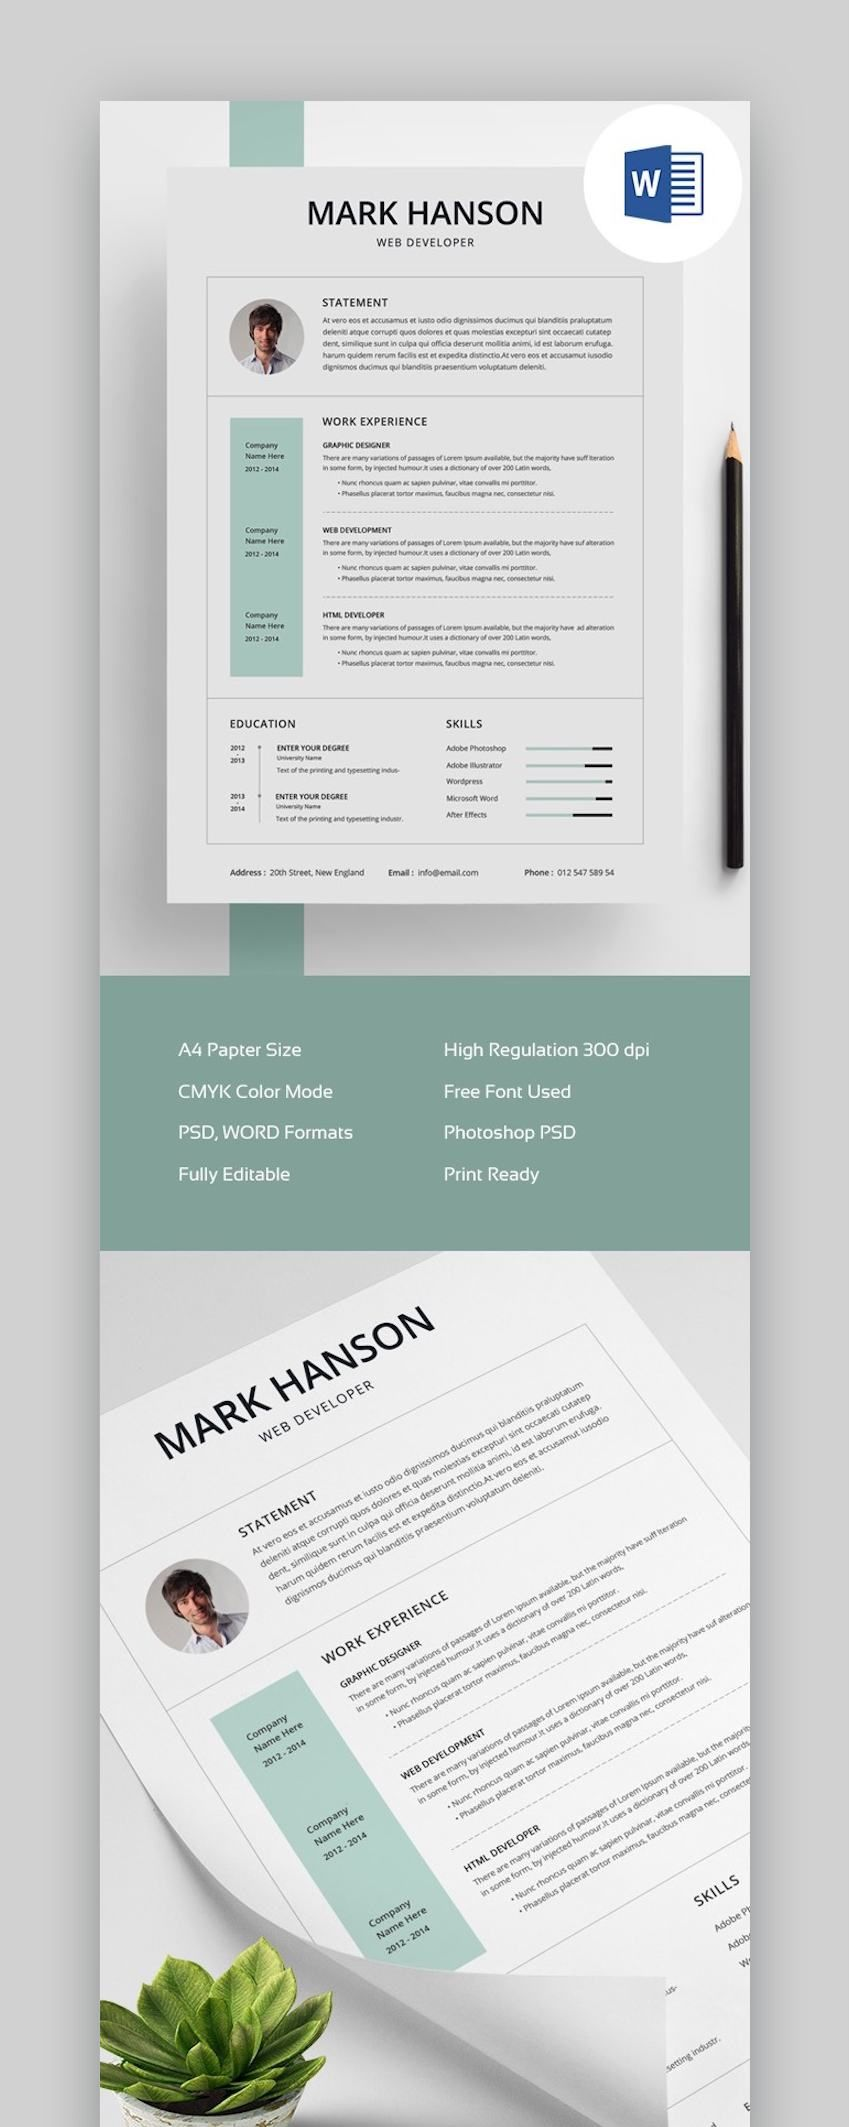 006 Marvelou Creative Resume Template Free Download Psd Image  CvFull